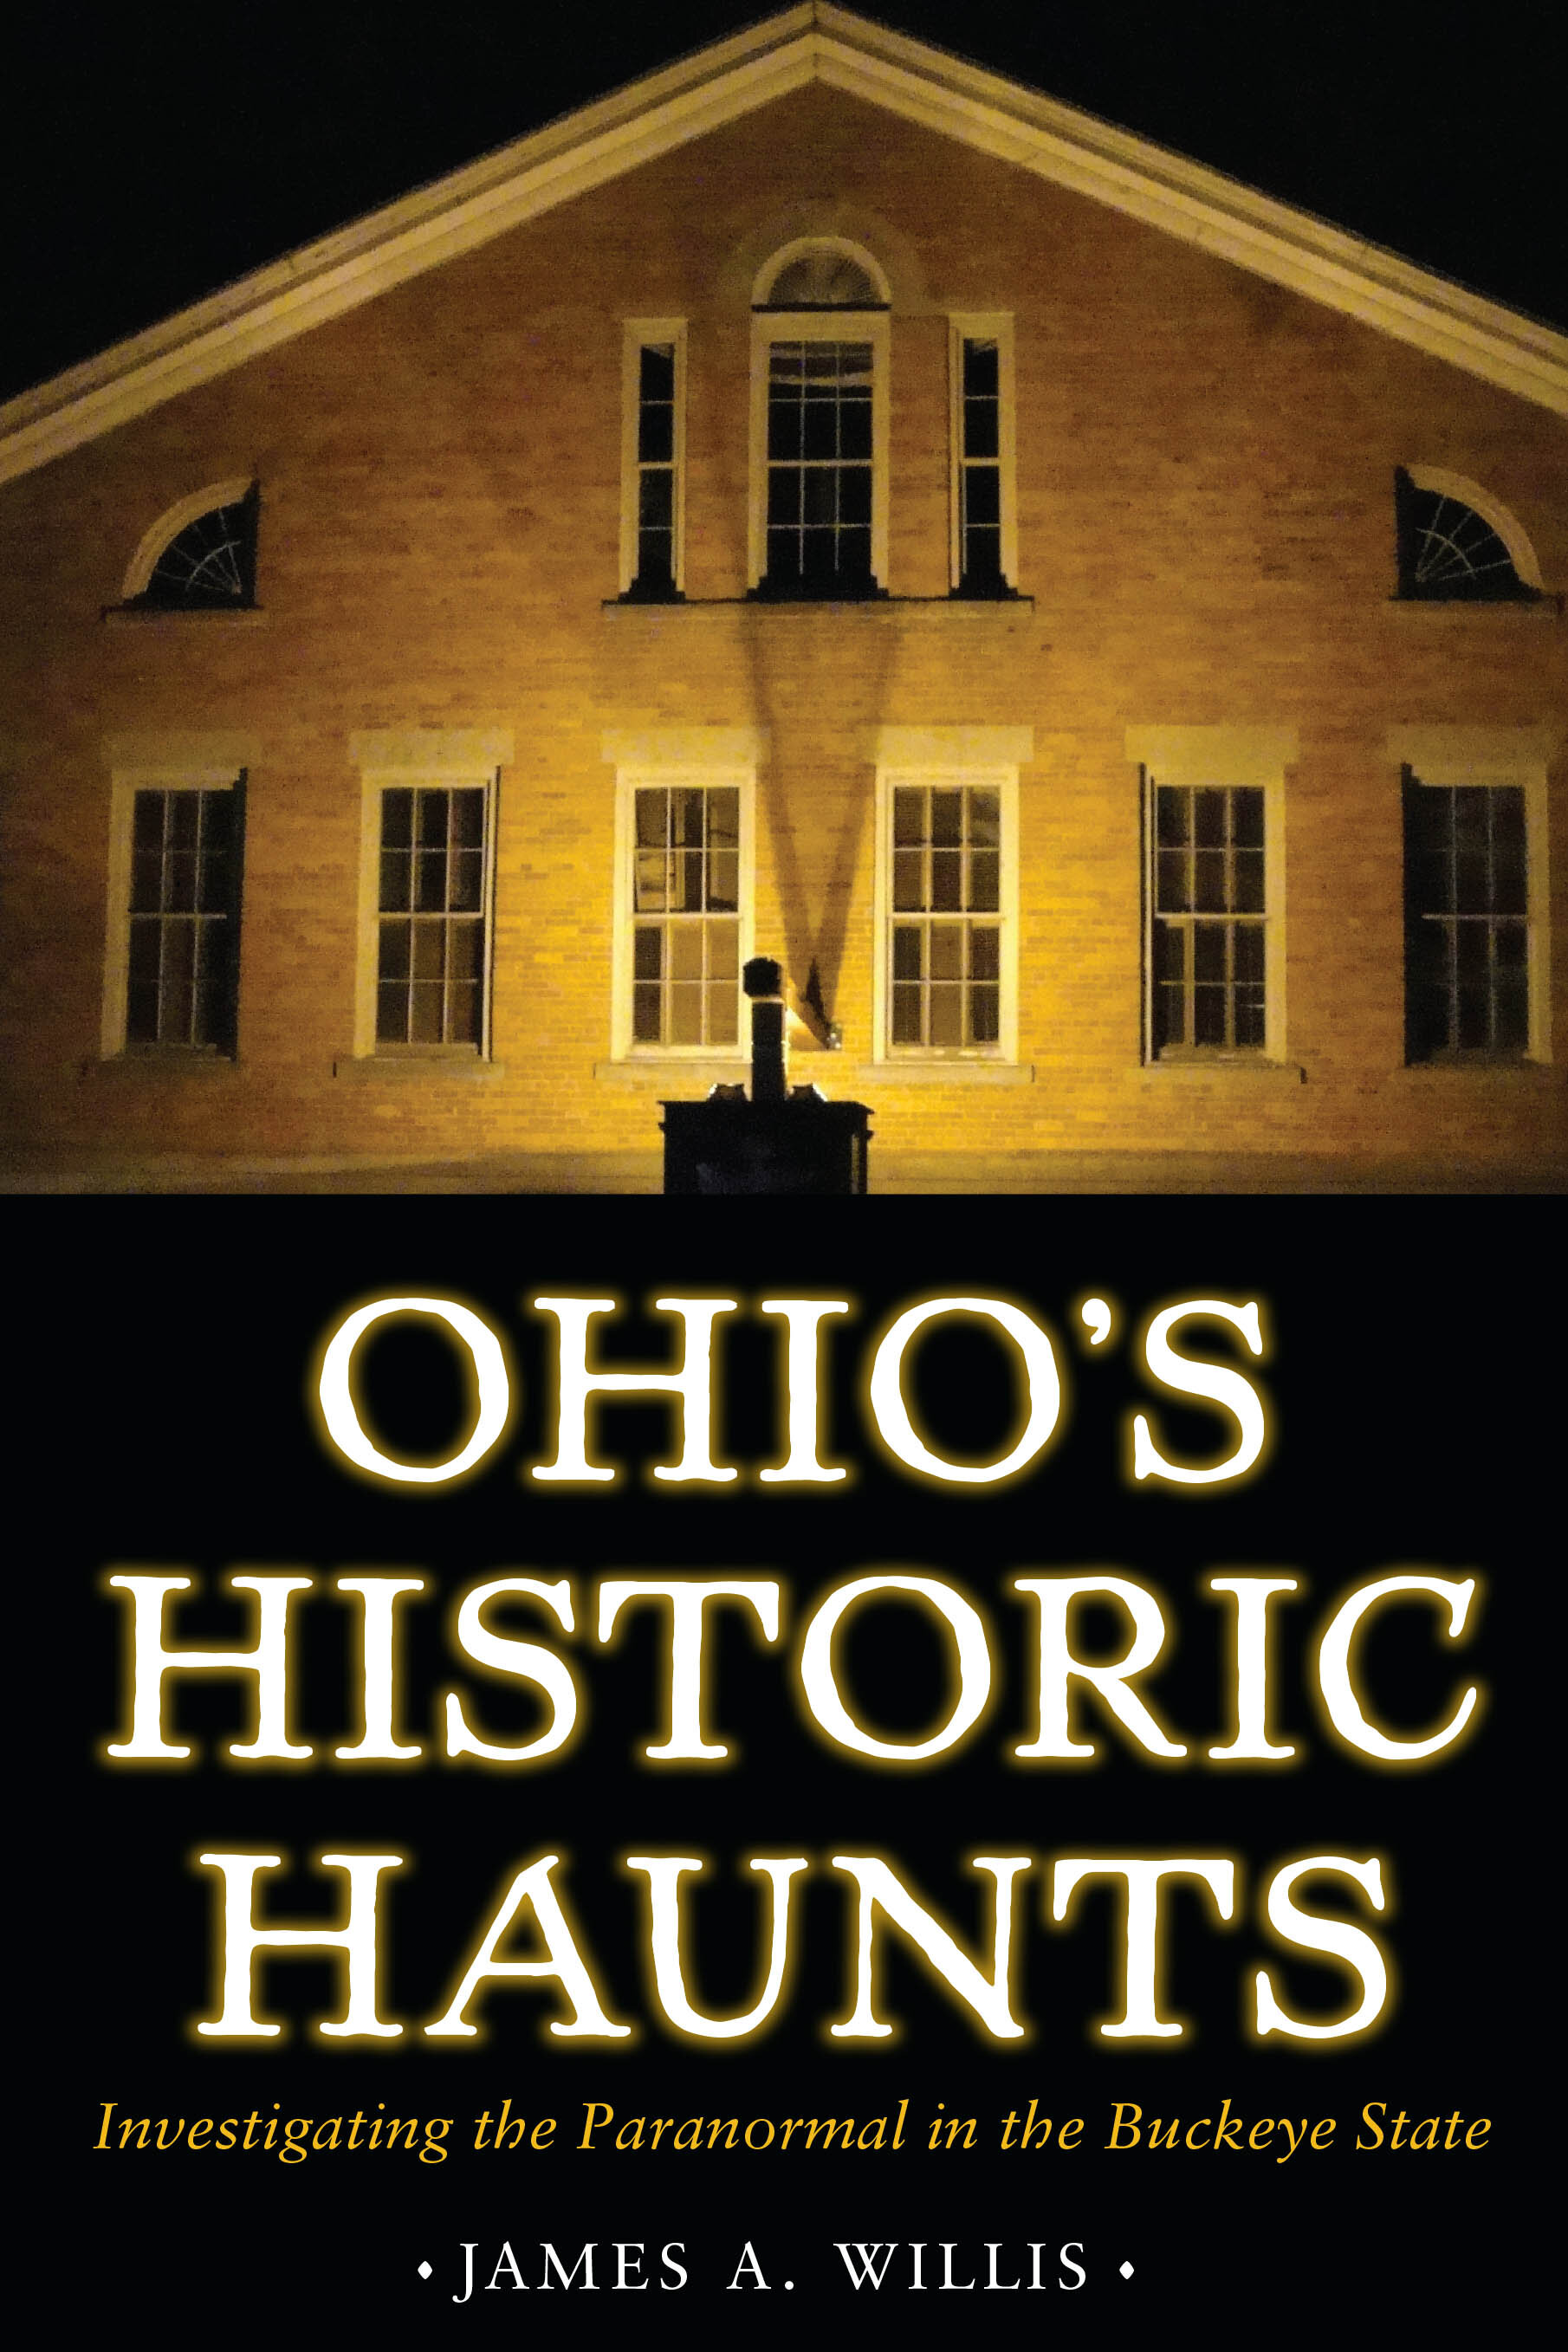 Ohios Historic Haunts[1].jpg